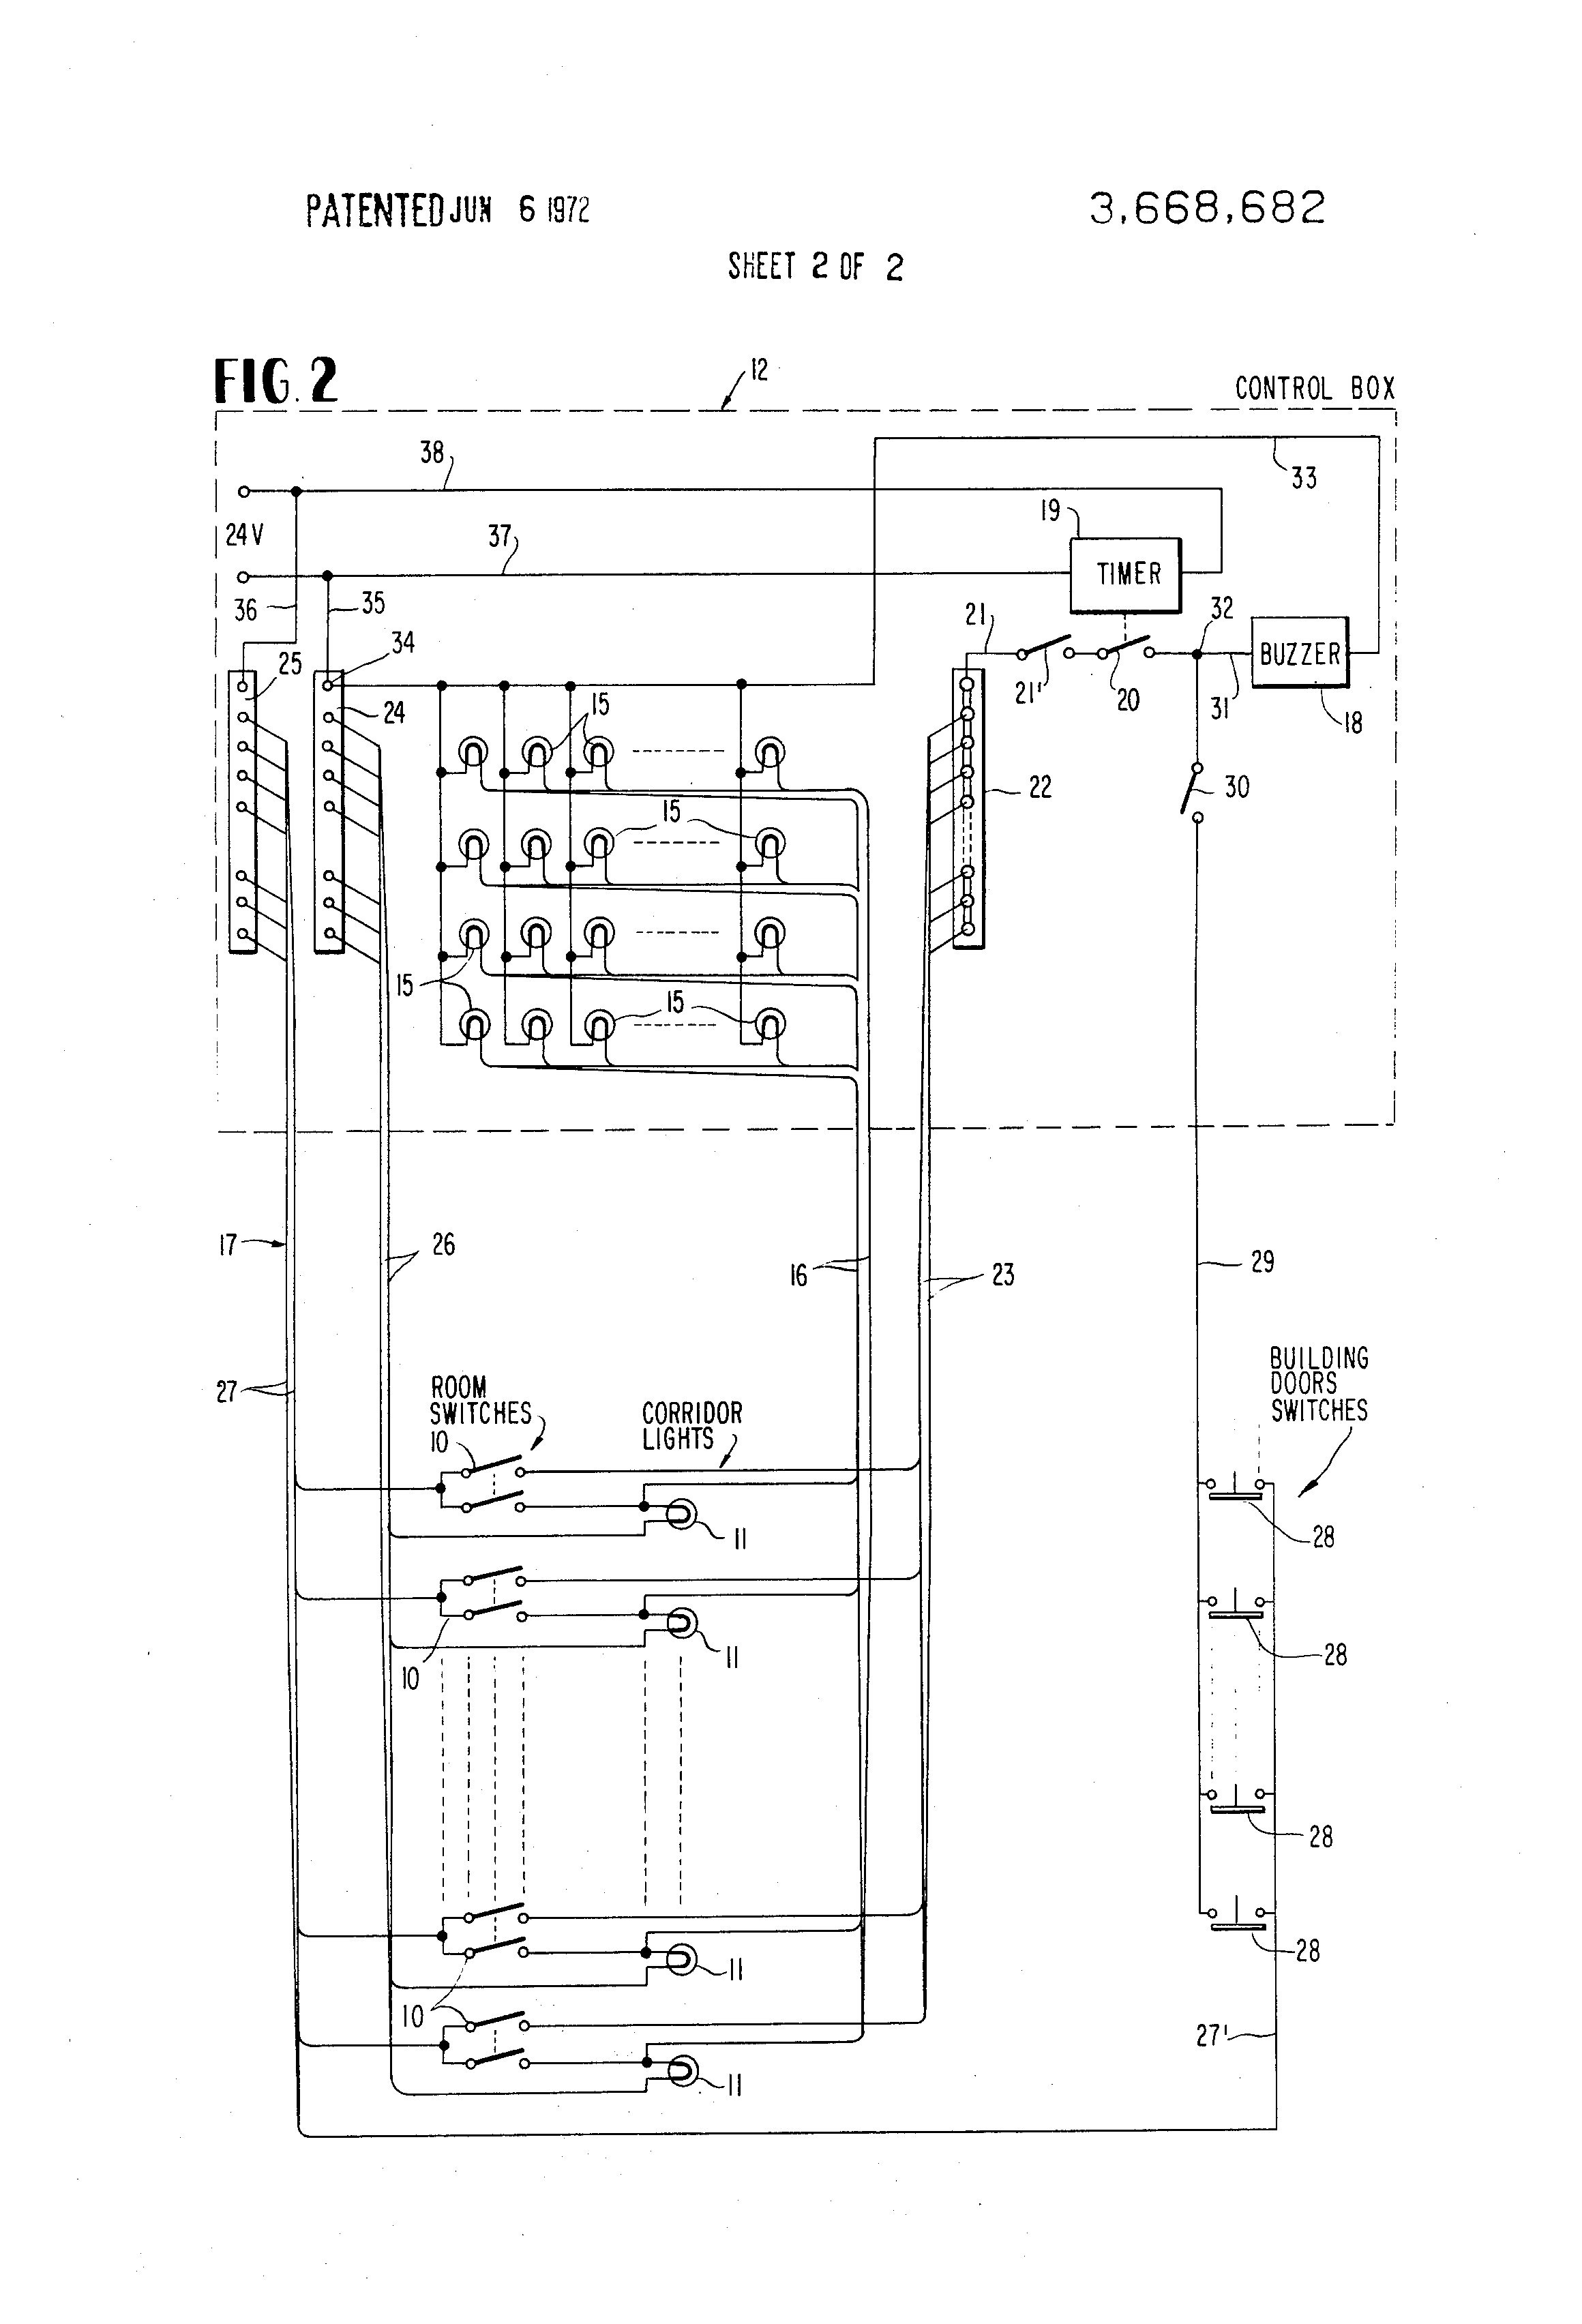 Corridor Lighting Wiring Diagram 32 Images Elkay Us3668682 2 Patent Nurse Call And Alarm System For Nursing Homes